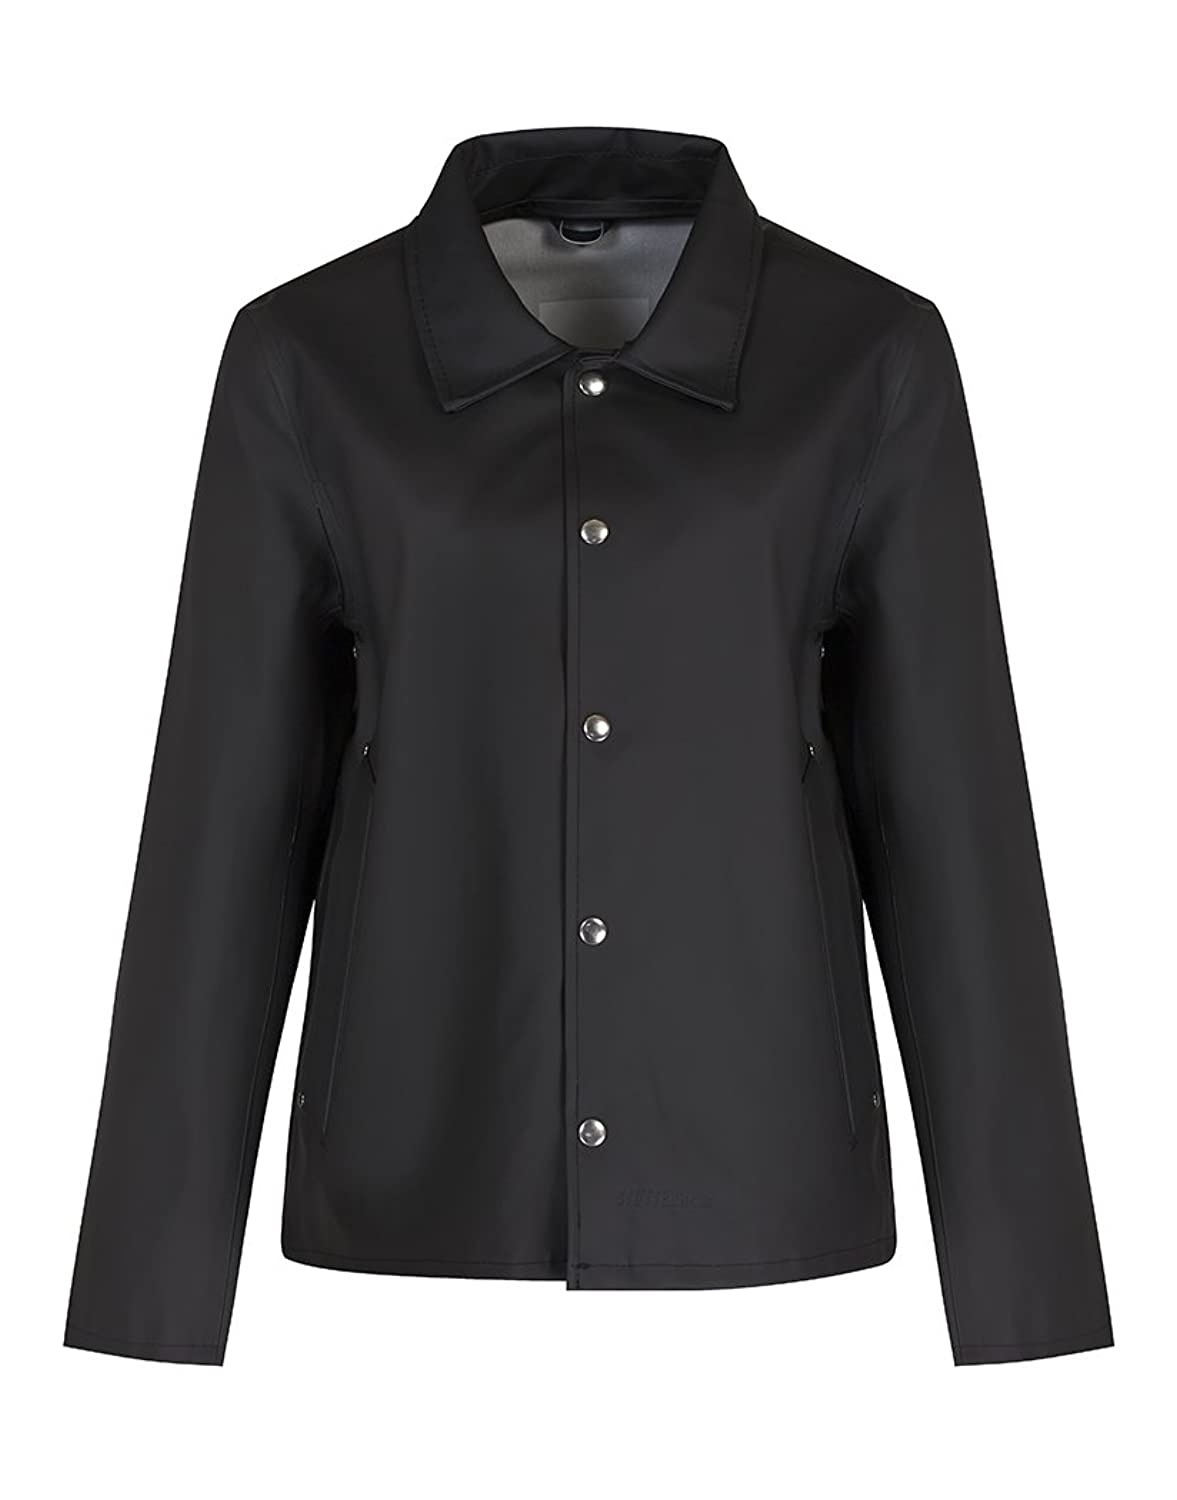 Stutterheim Men's Stadion Short Jacket - Black